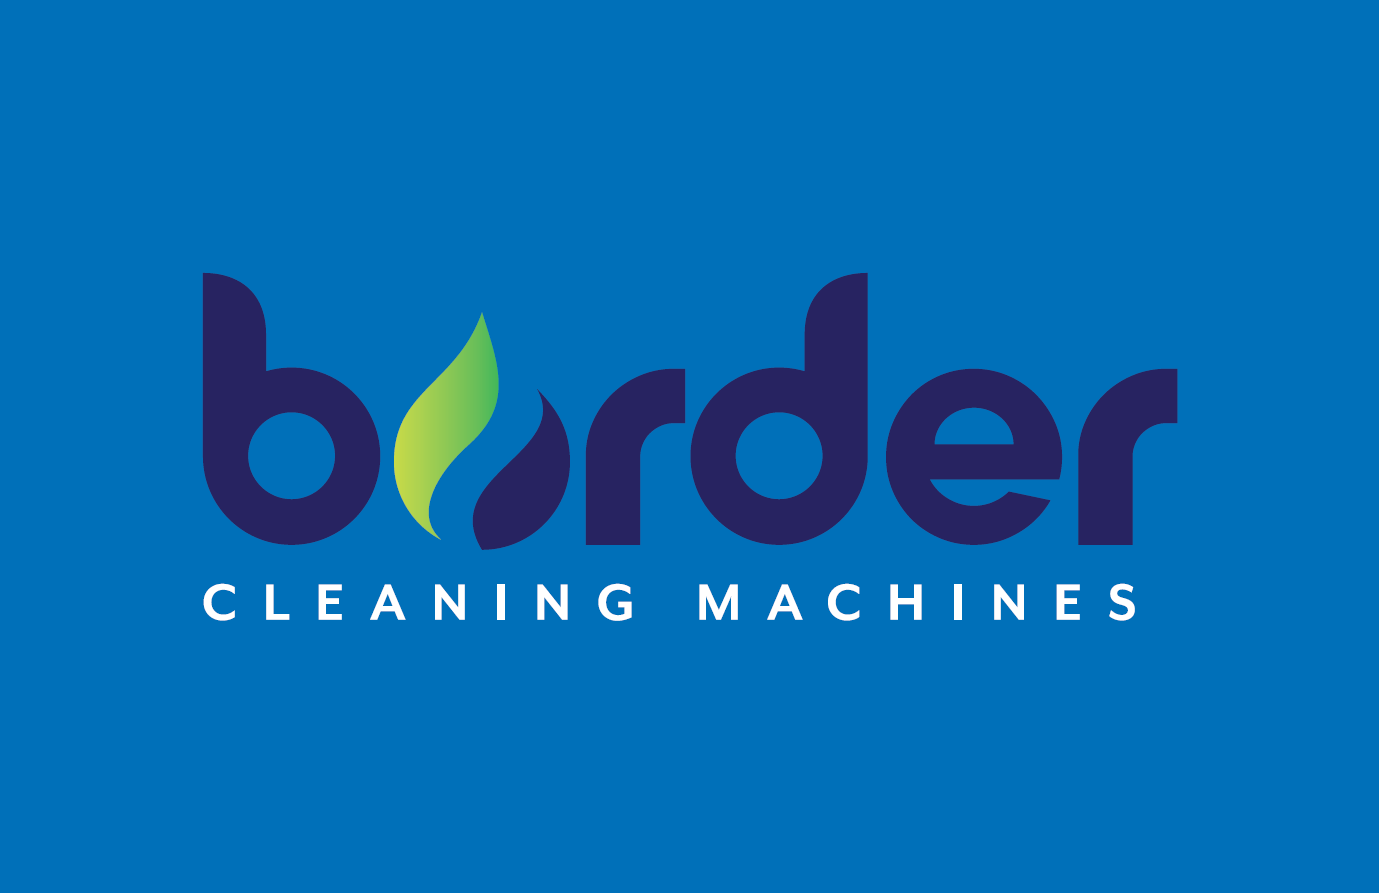 Border Cleaning Machines